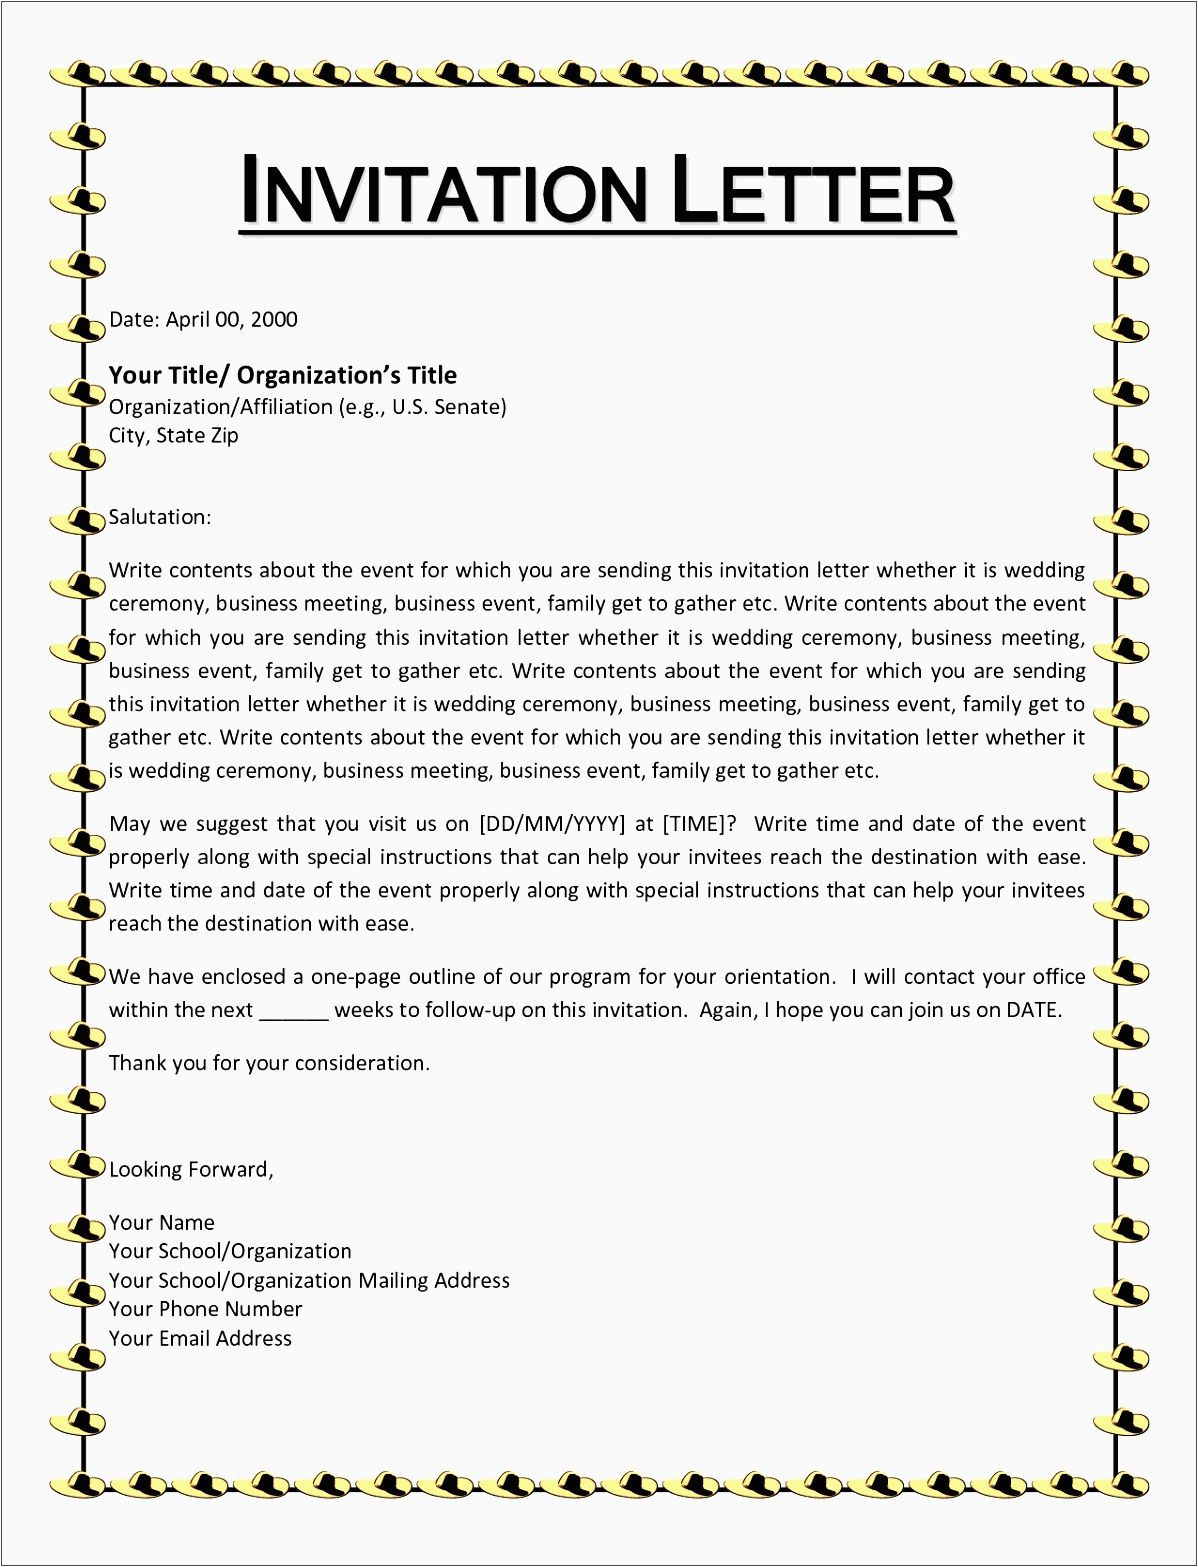 Beautiful Sayings to Write In A Wedding Card Invitation Letter Informal Saevk Beautiful Wedding